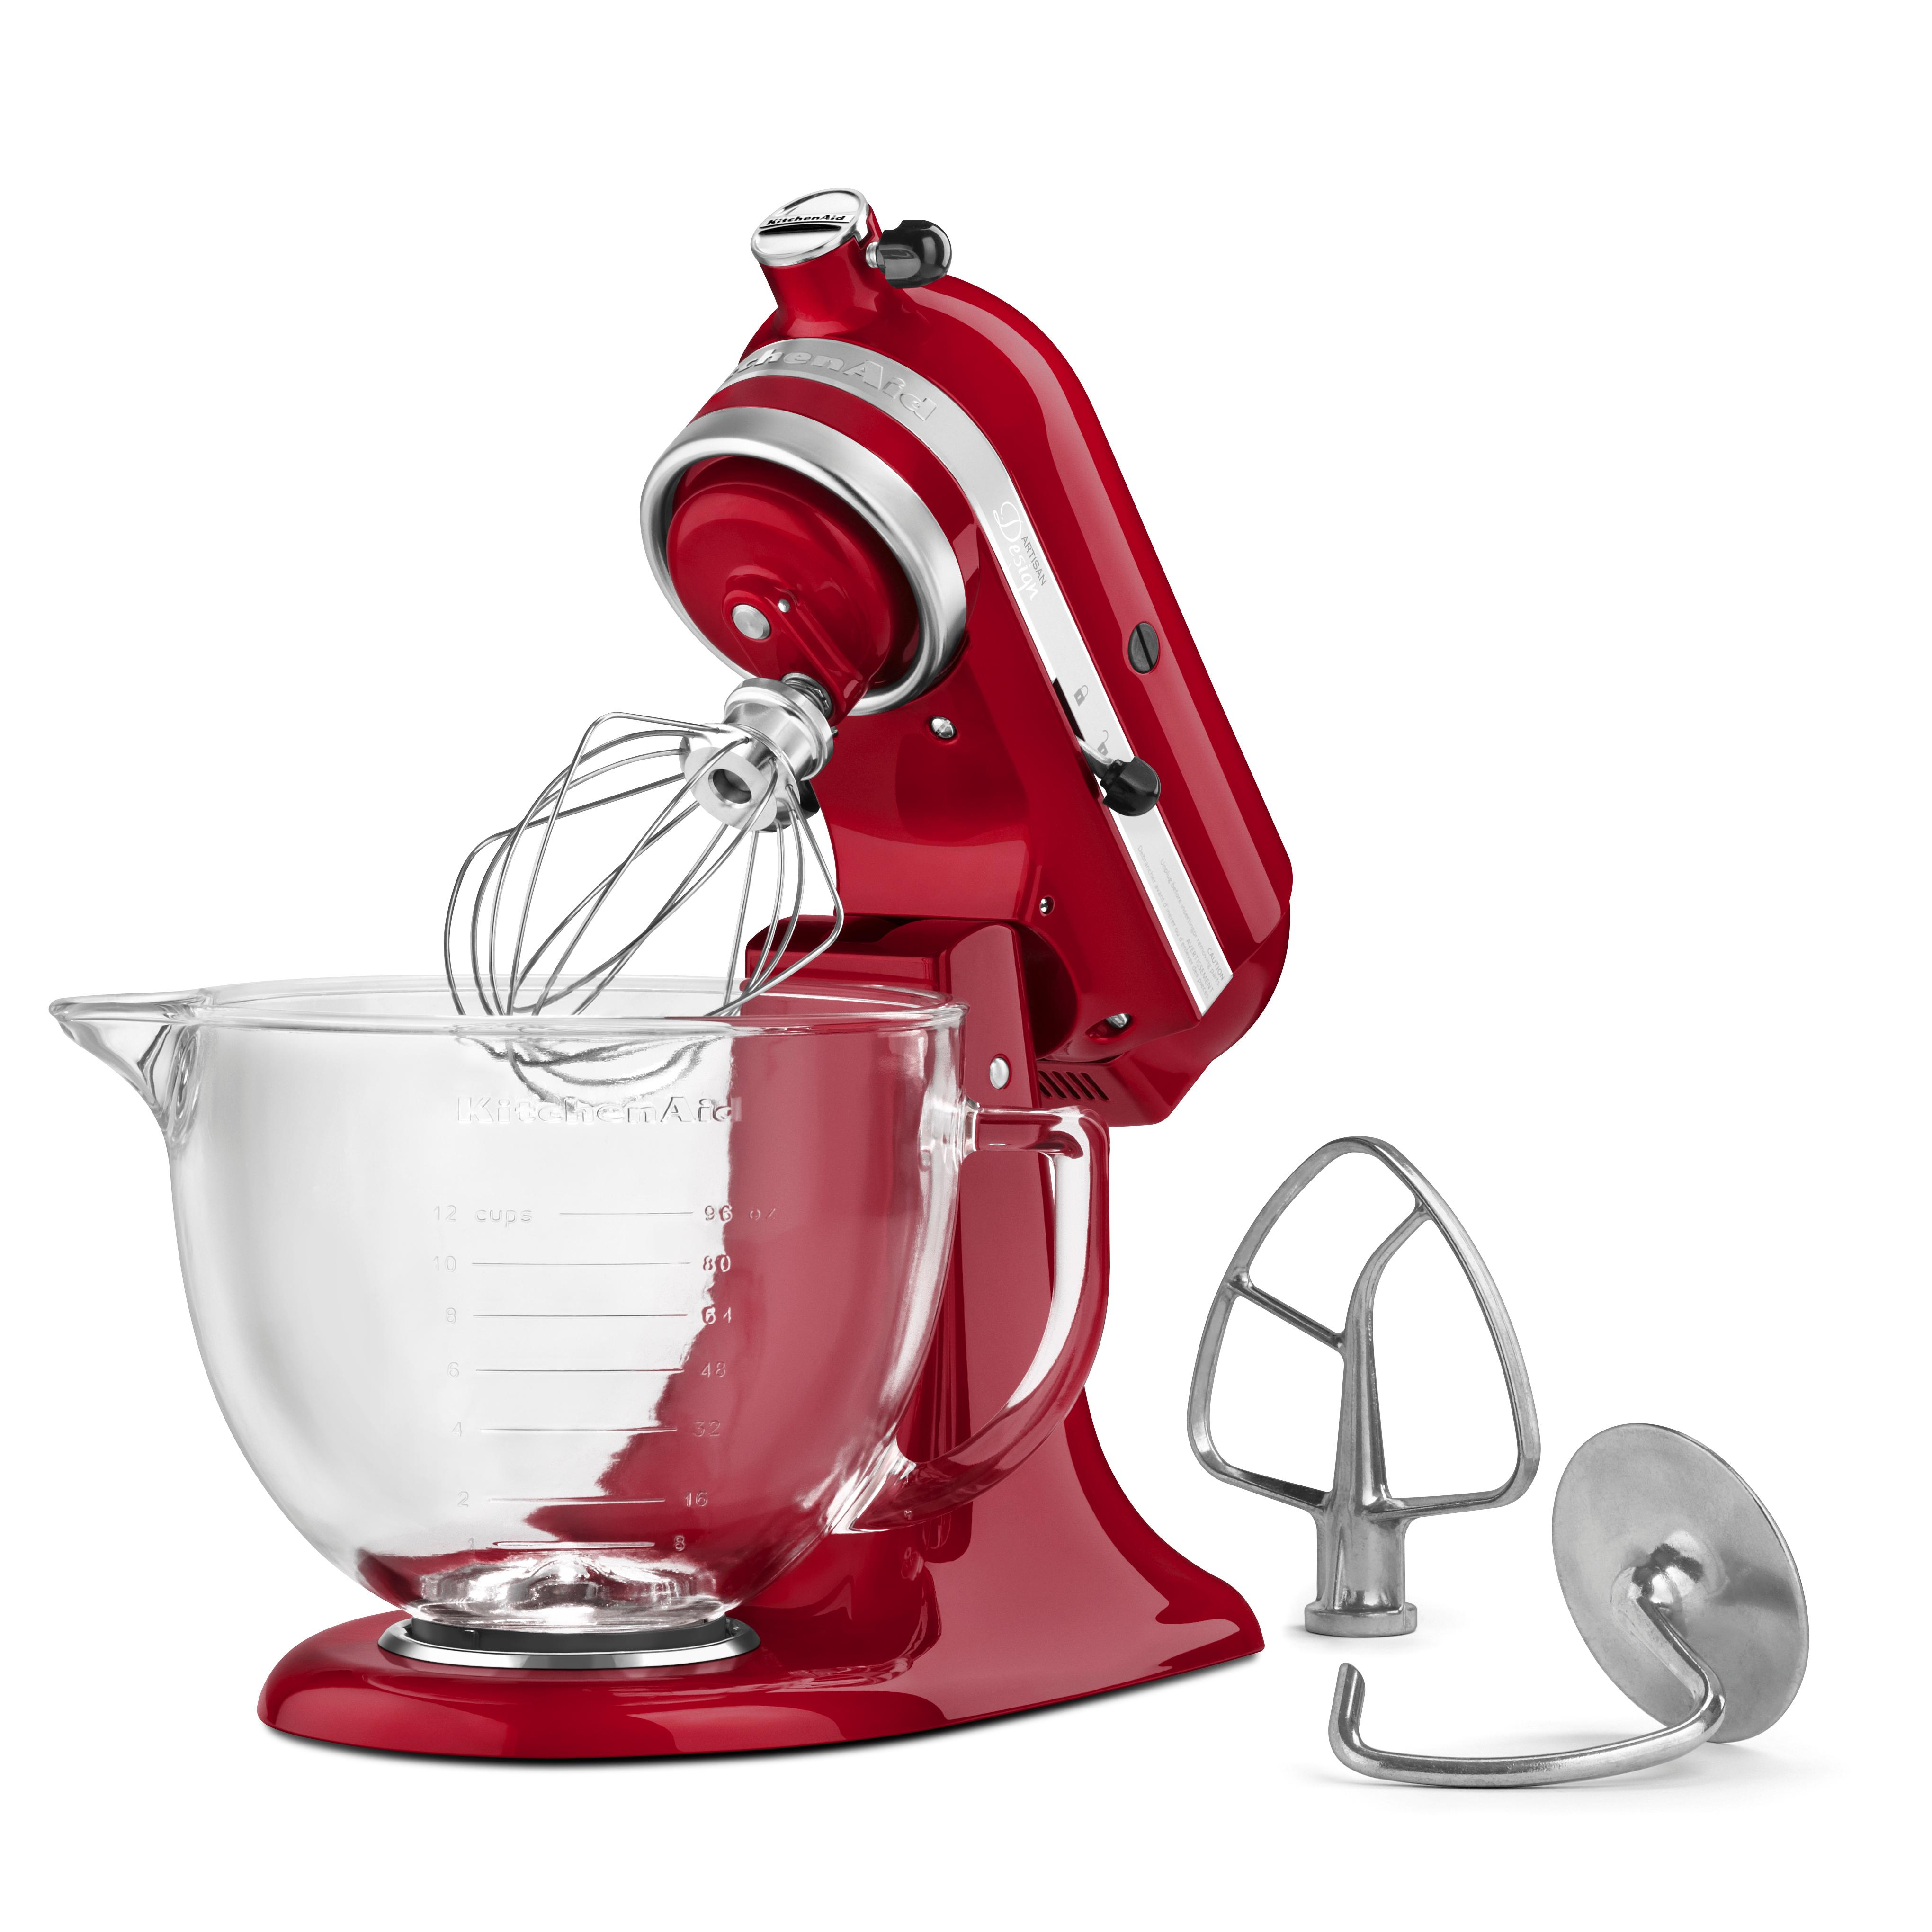 Kitchenaid 5 Quart Tilt Head Model Series Stand Mixer With Glass Bowl Silver